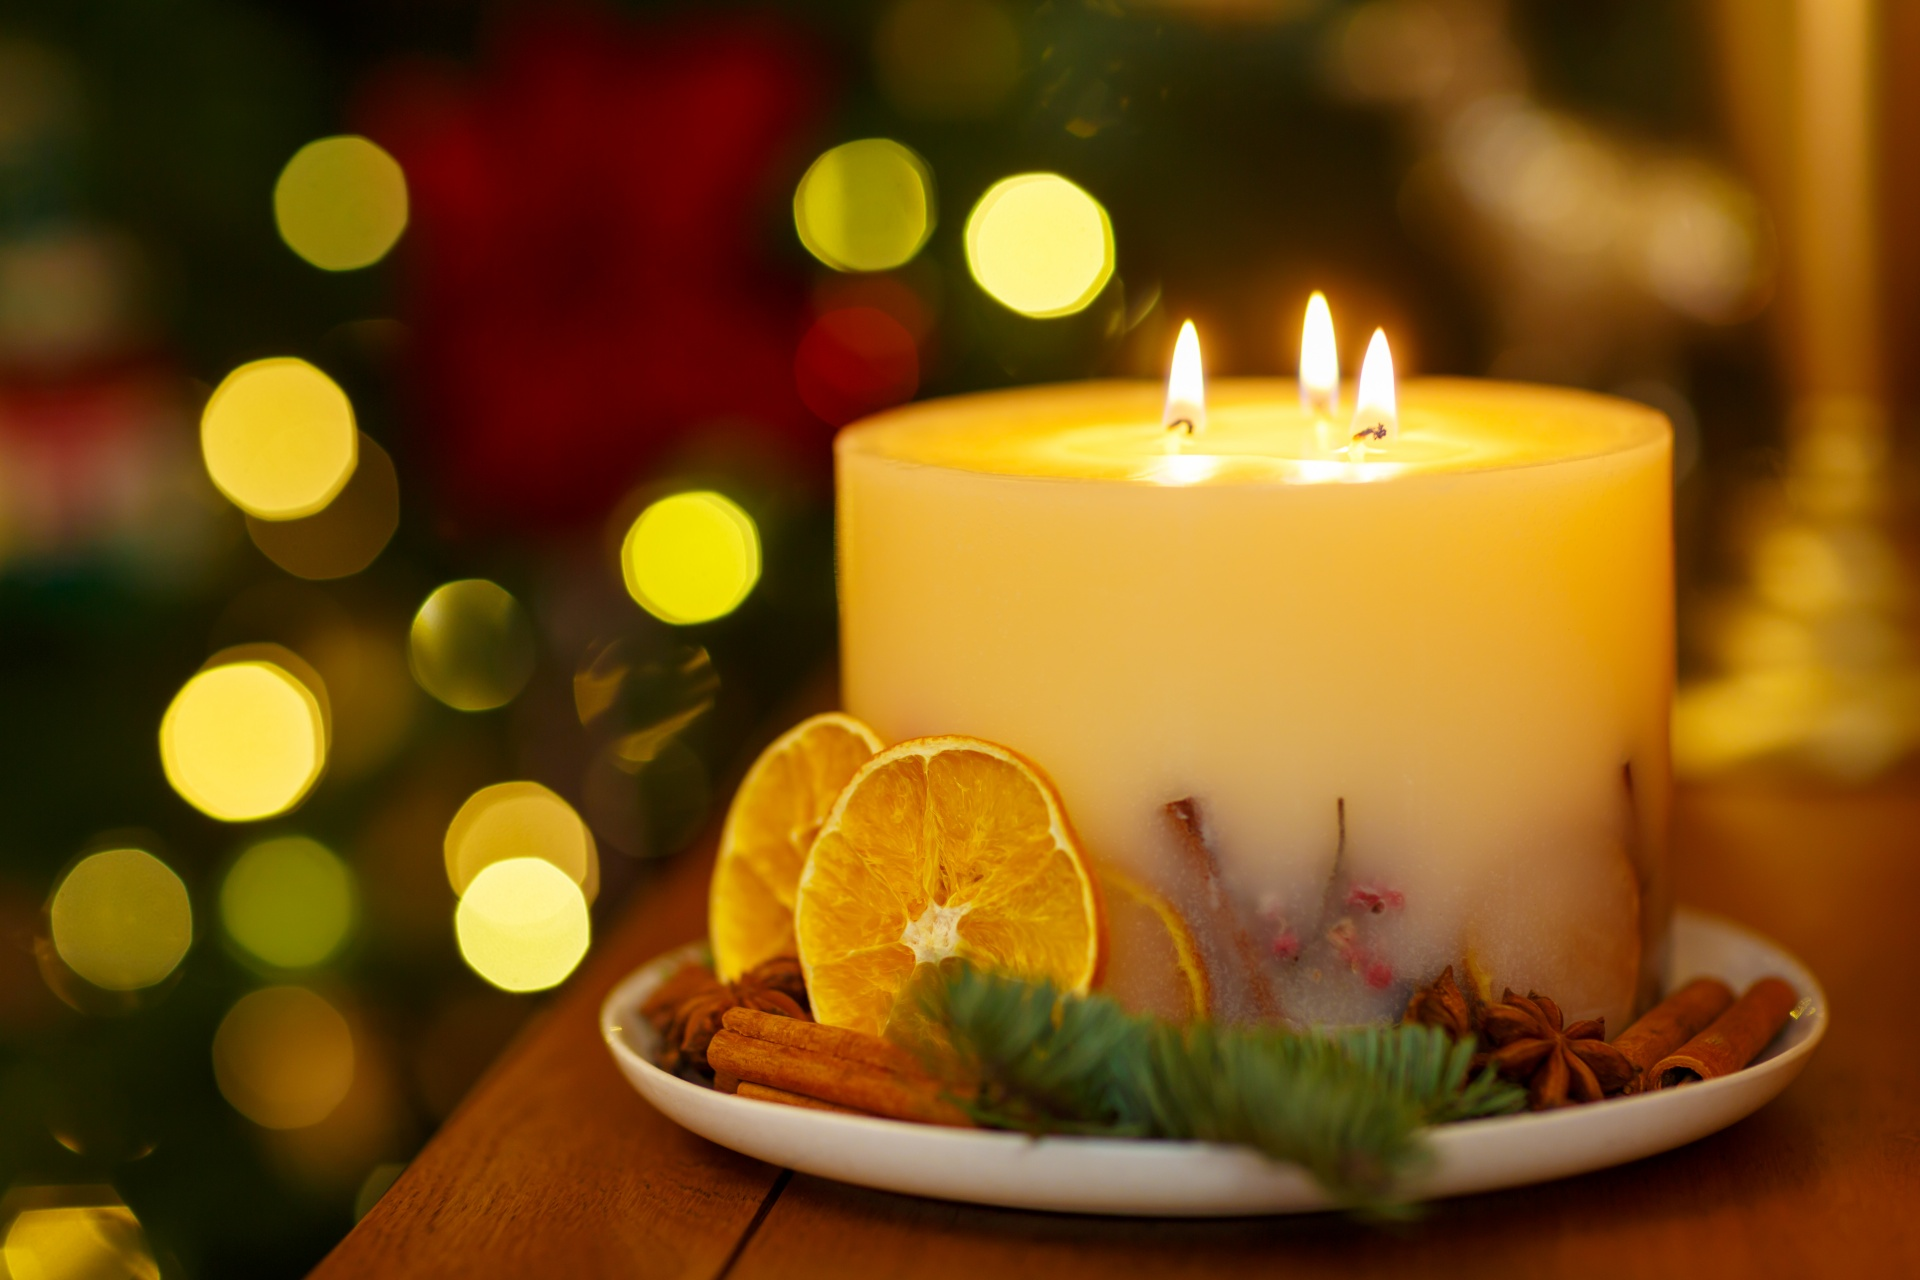 http://www.publicdomainpictures.net/view-image.php?image=140523&picture=christmas-candle